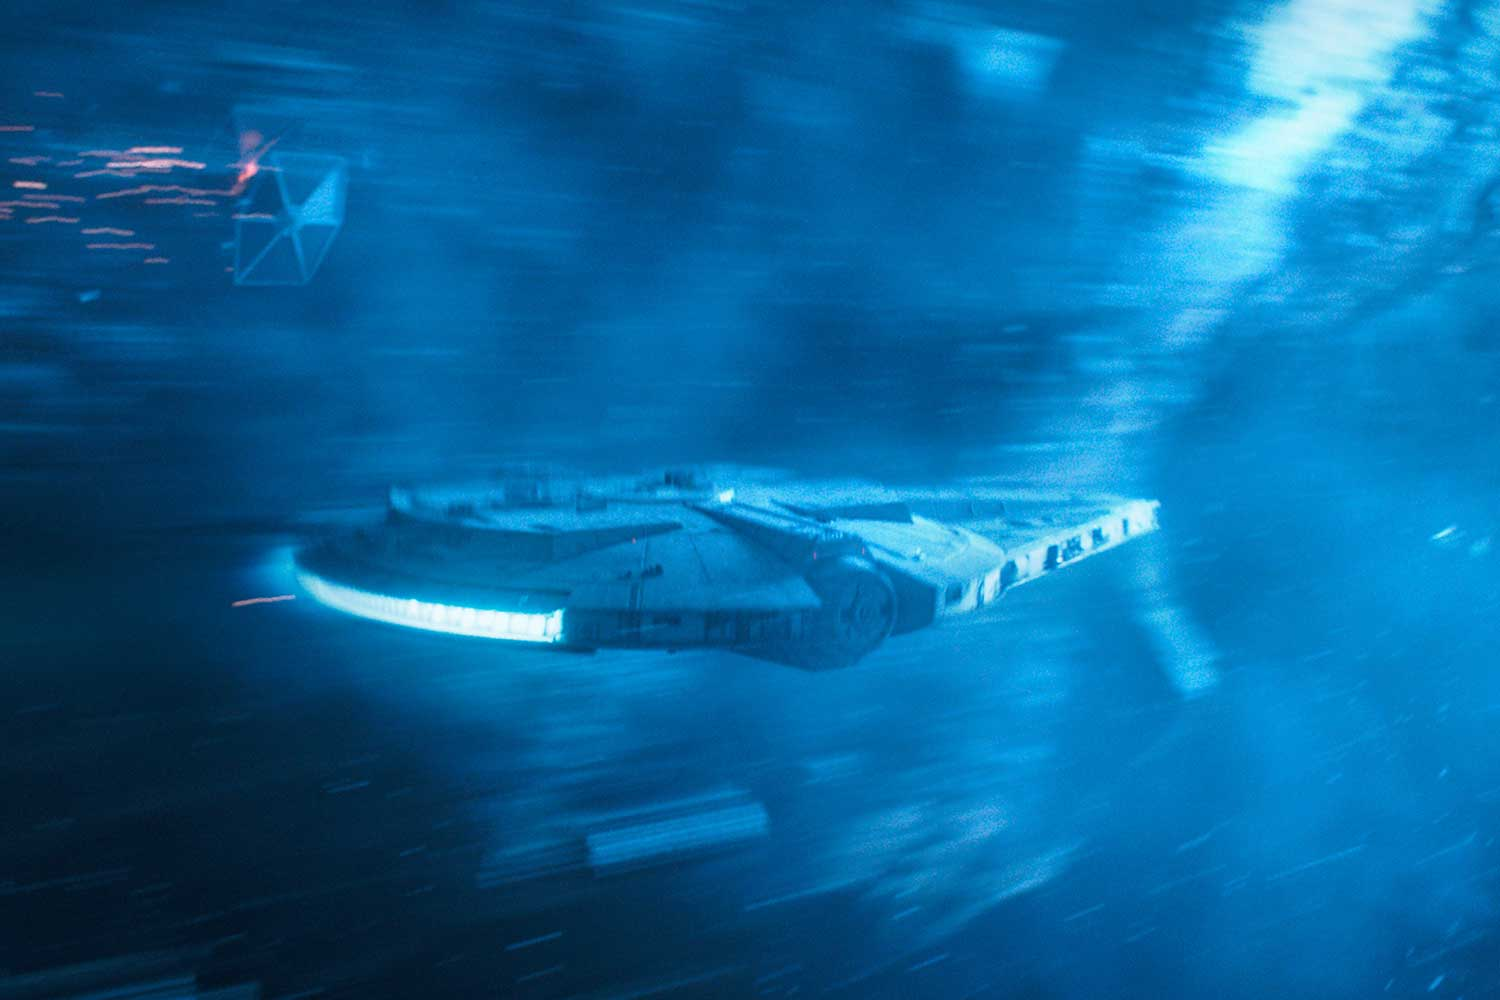 The Run Revealed? Kessel, Legends and Solo: A Star Wars Story ...